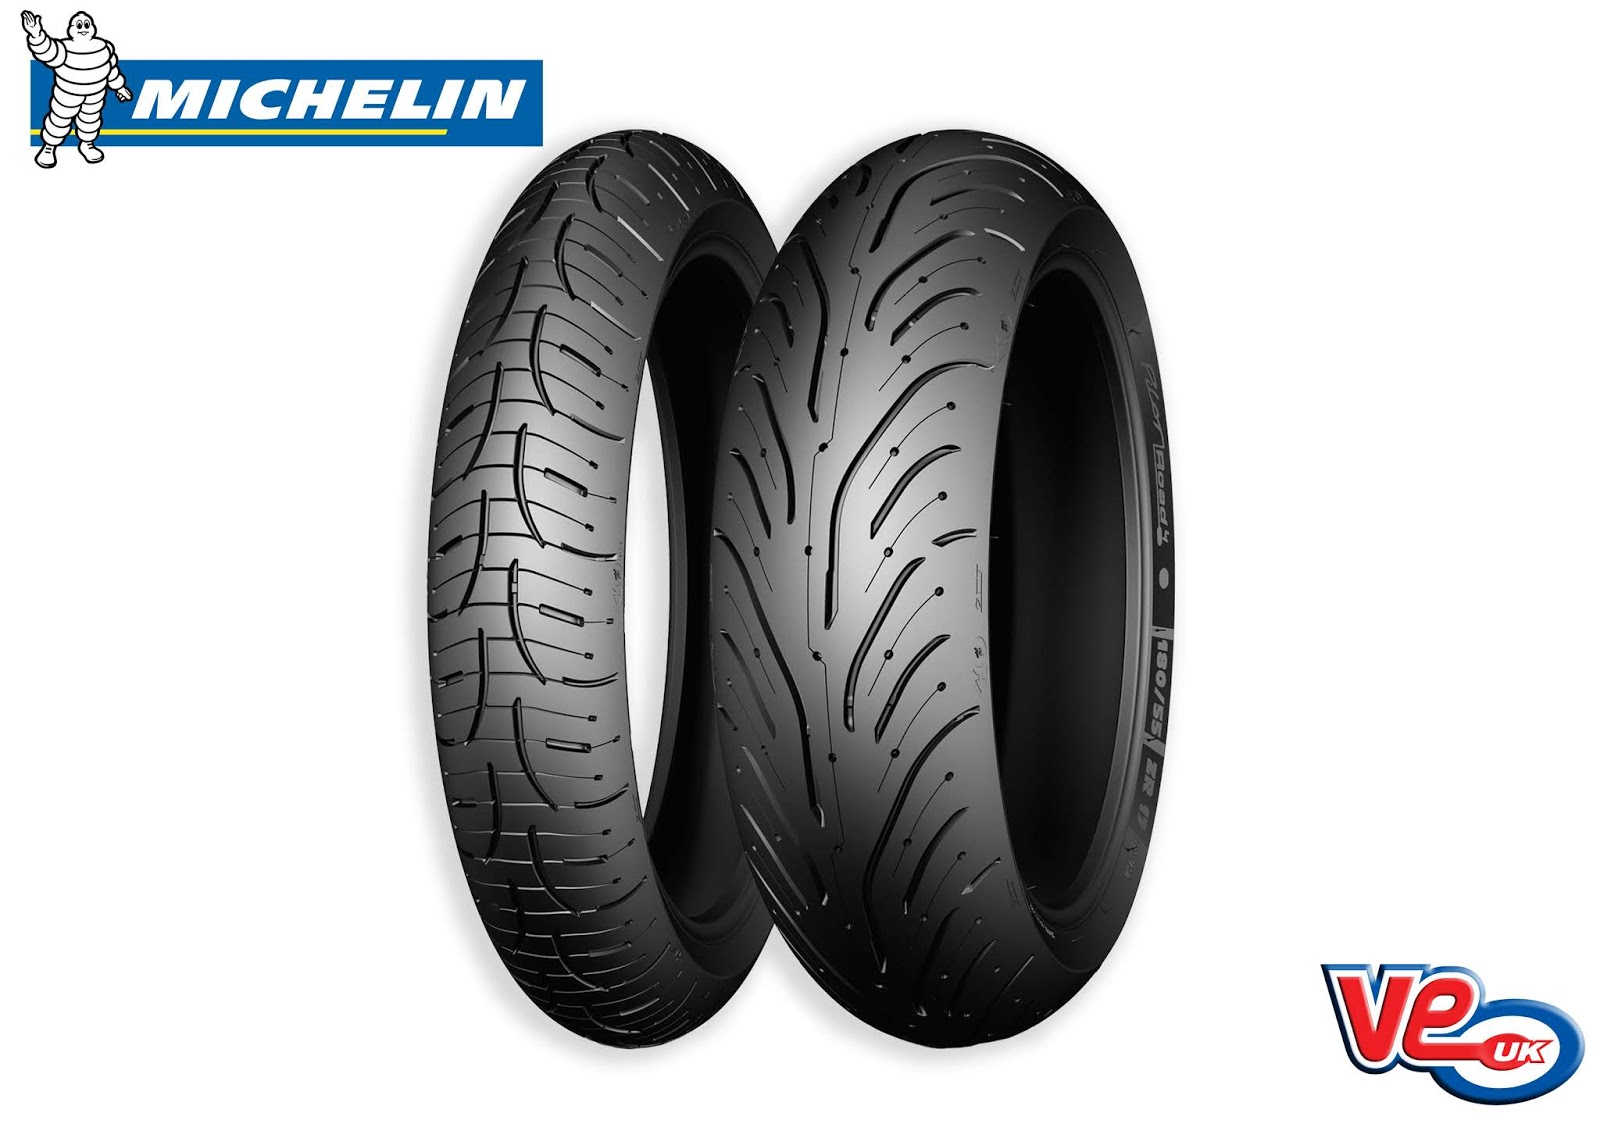 Michelin Pilot Road 4 Scooter Tyres